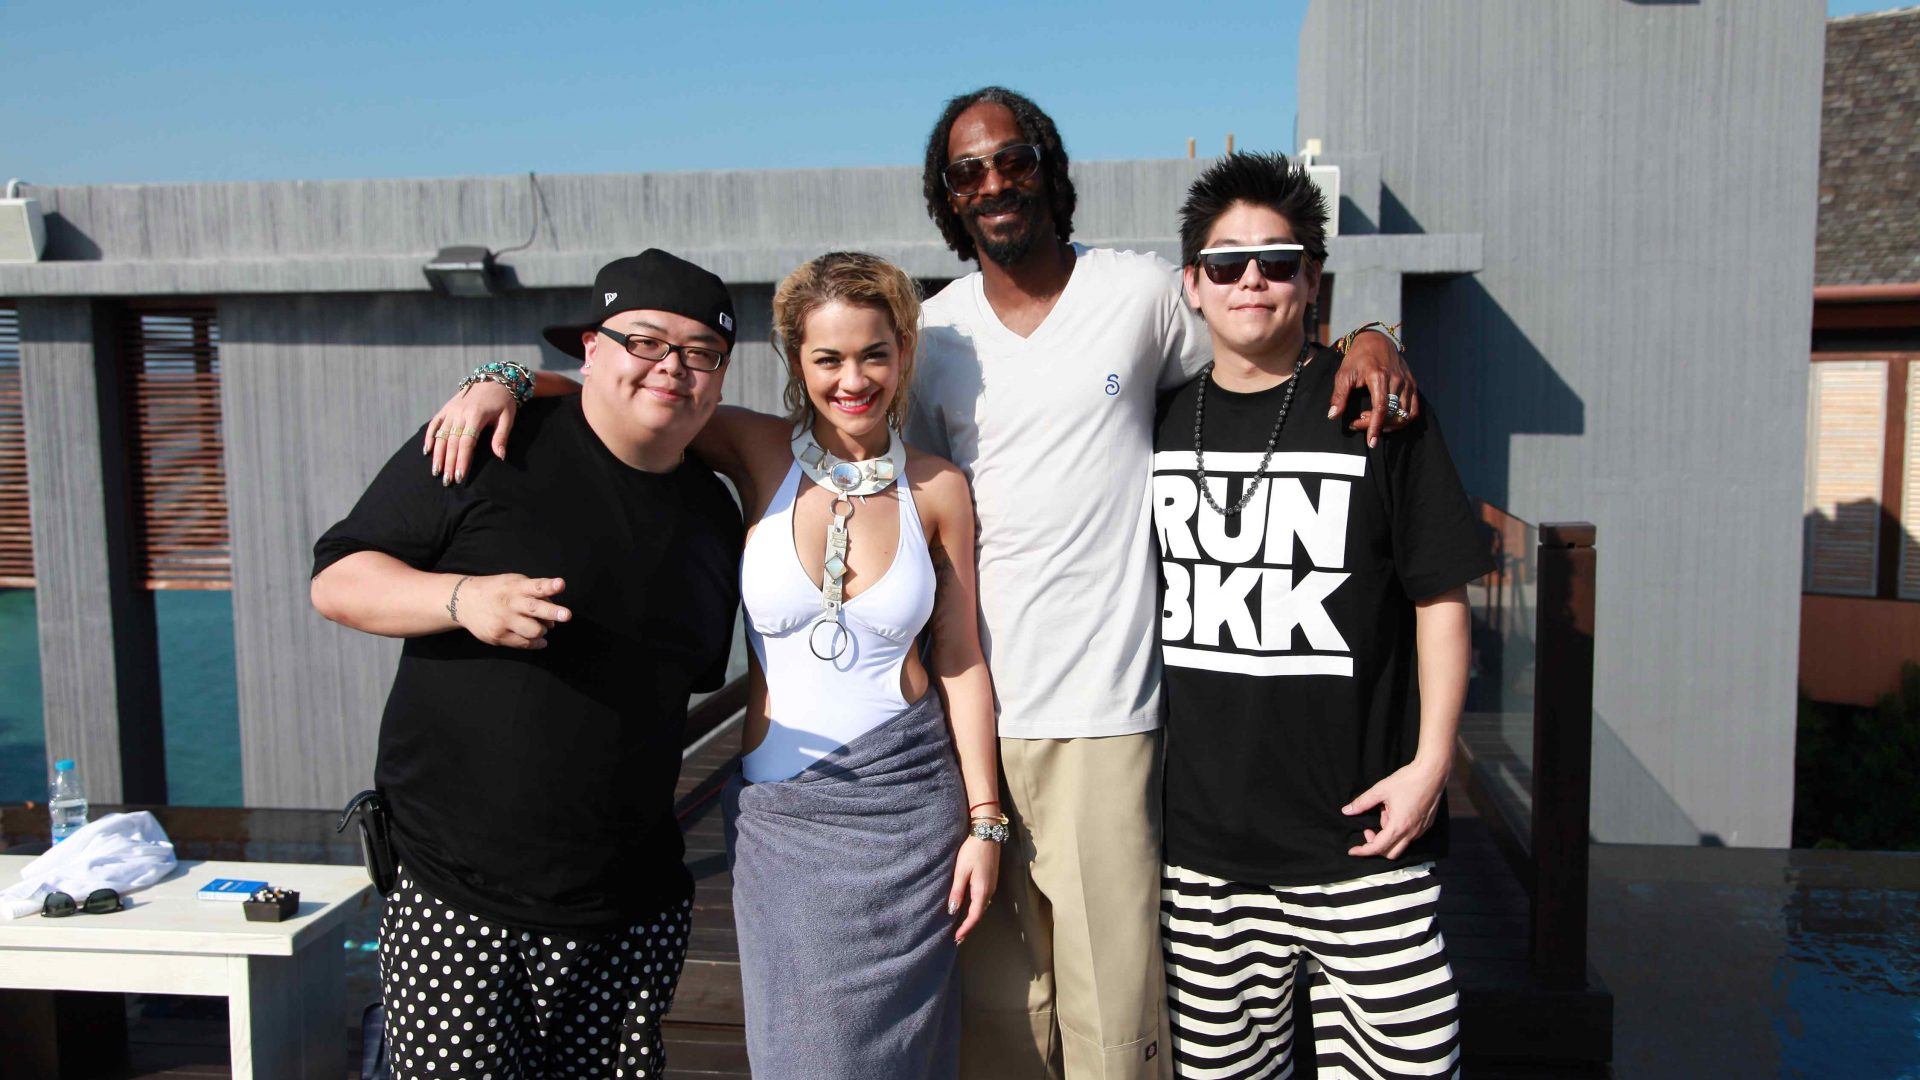 Snoop-Dog-and-Rita-Ora-2013-Event-Sri-panwa-Luxury-Pool-Villa-Phuket-Thailand